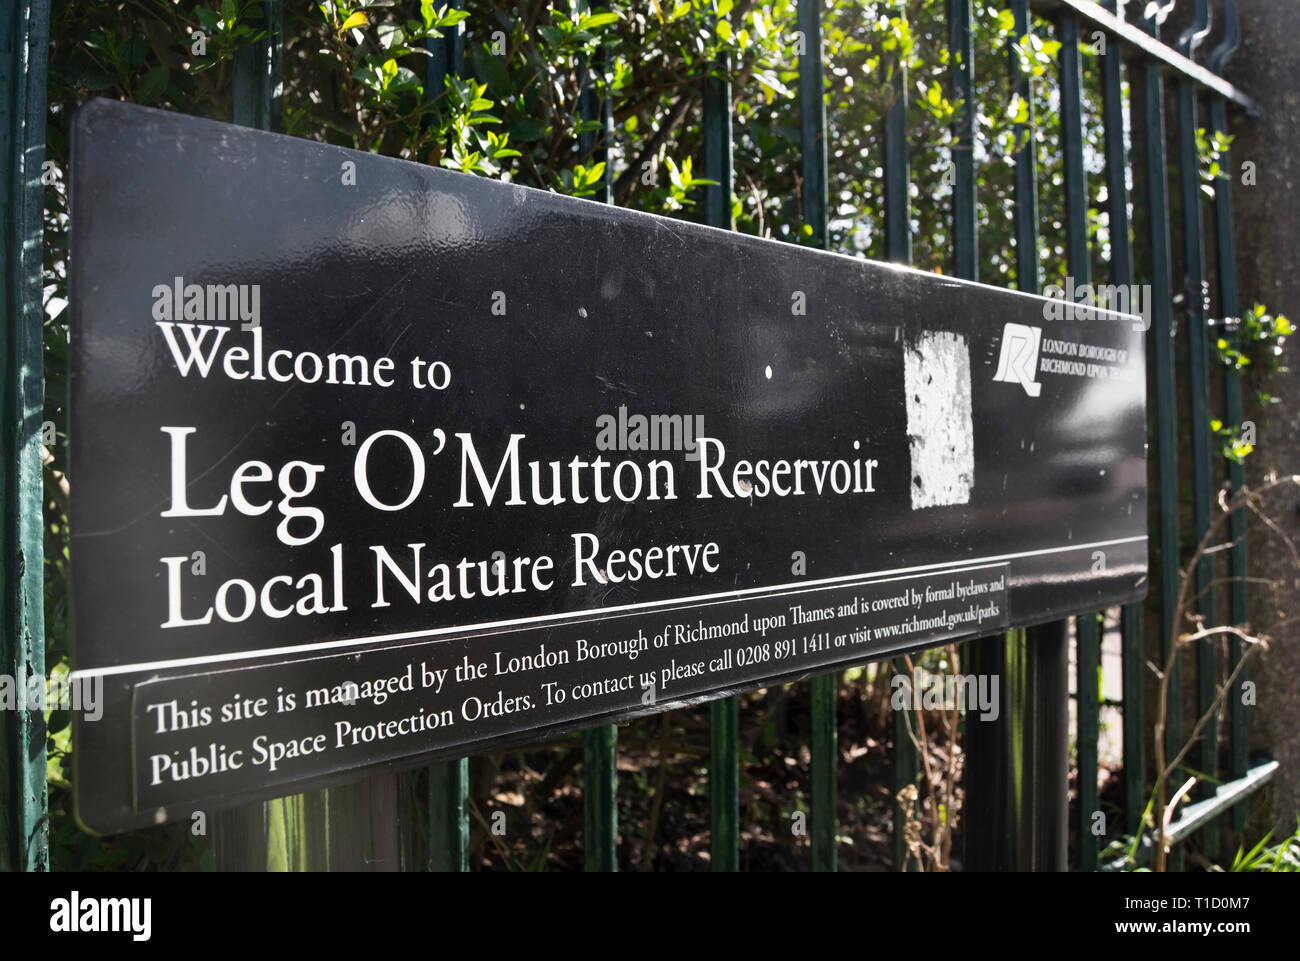 welcome sign at leg o'mutton reservoir, a local nature reserve around a disused reservoir in barnes, london, england - Stock Image